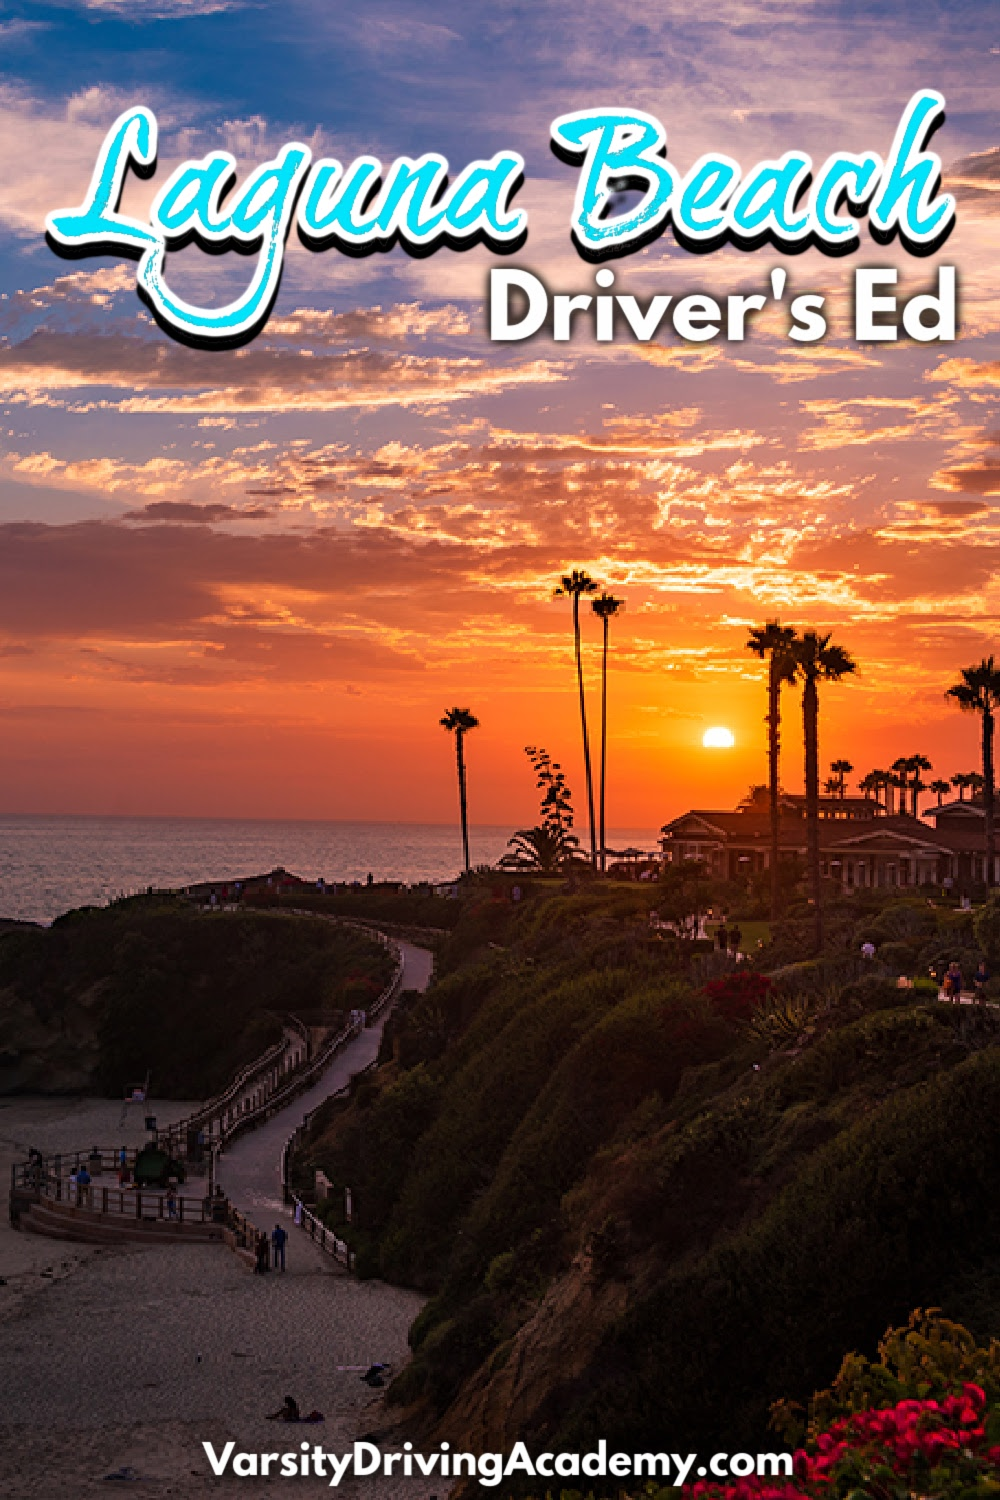 Varsity Driving Academy is the best Laguna Beach drivers ed for teens and adults who want to learn how to drive safely and defensively.